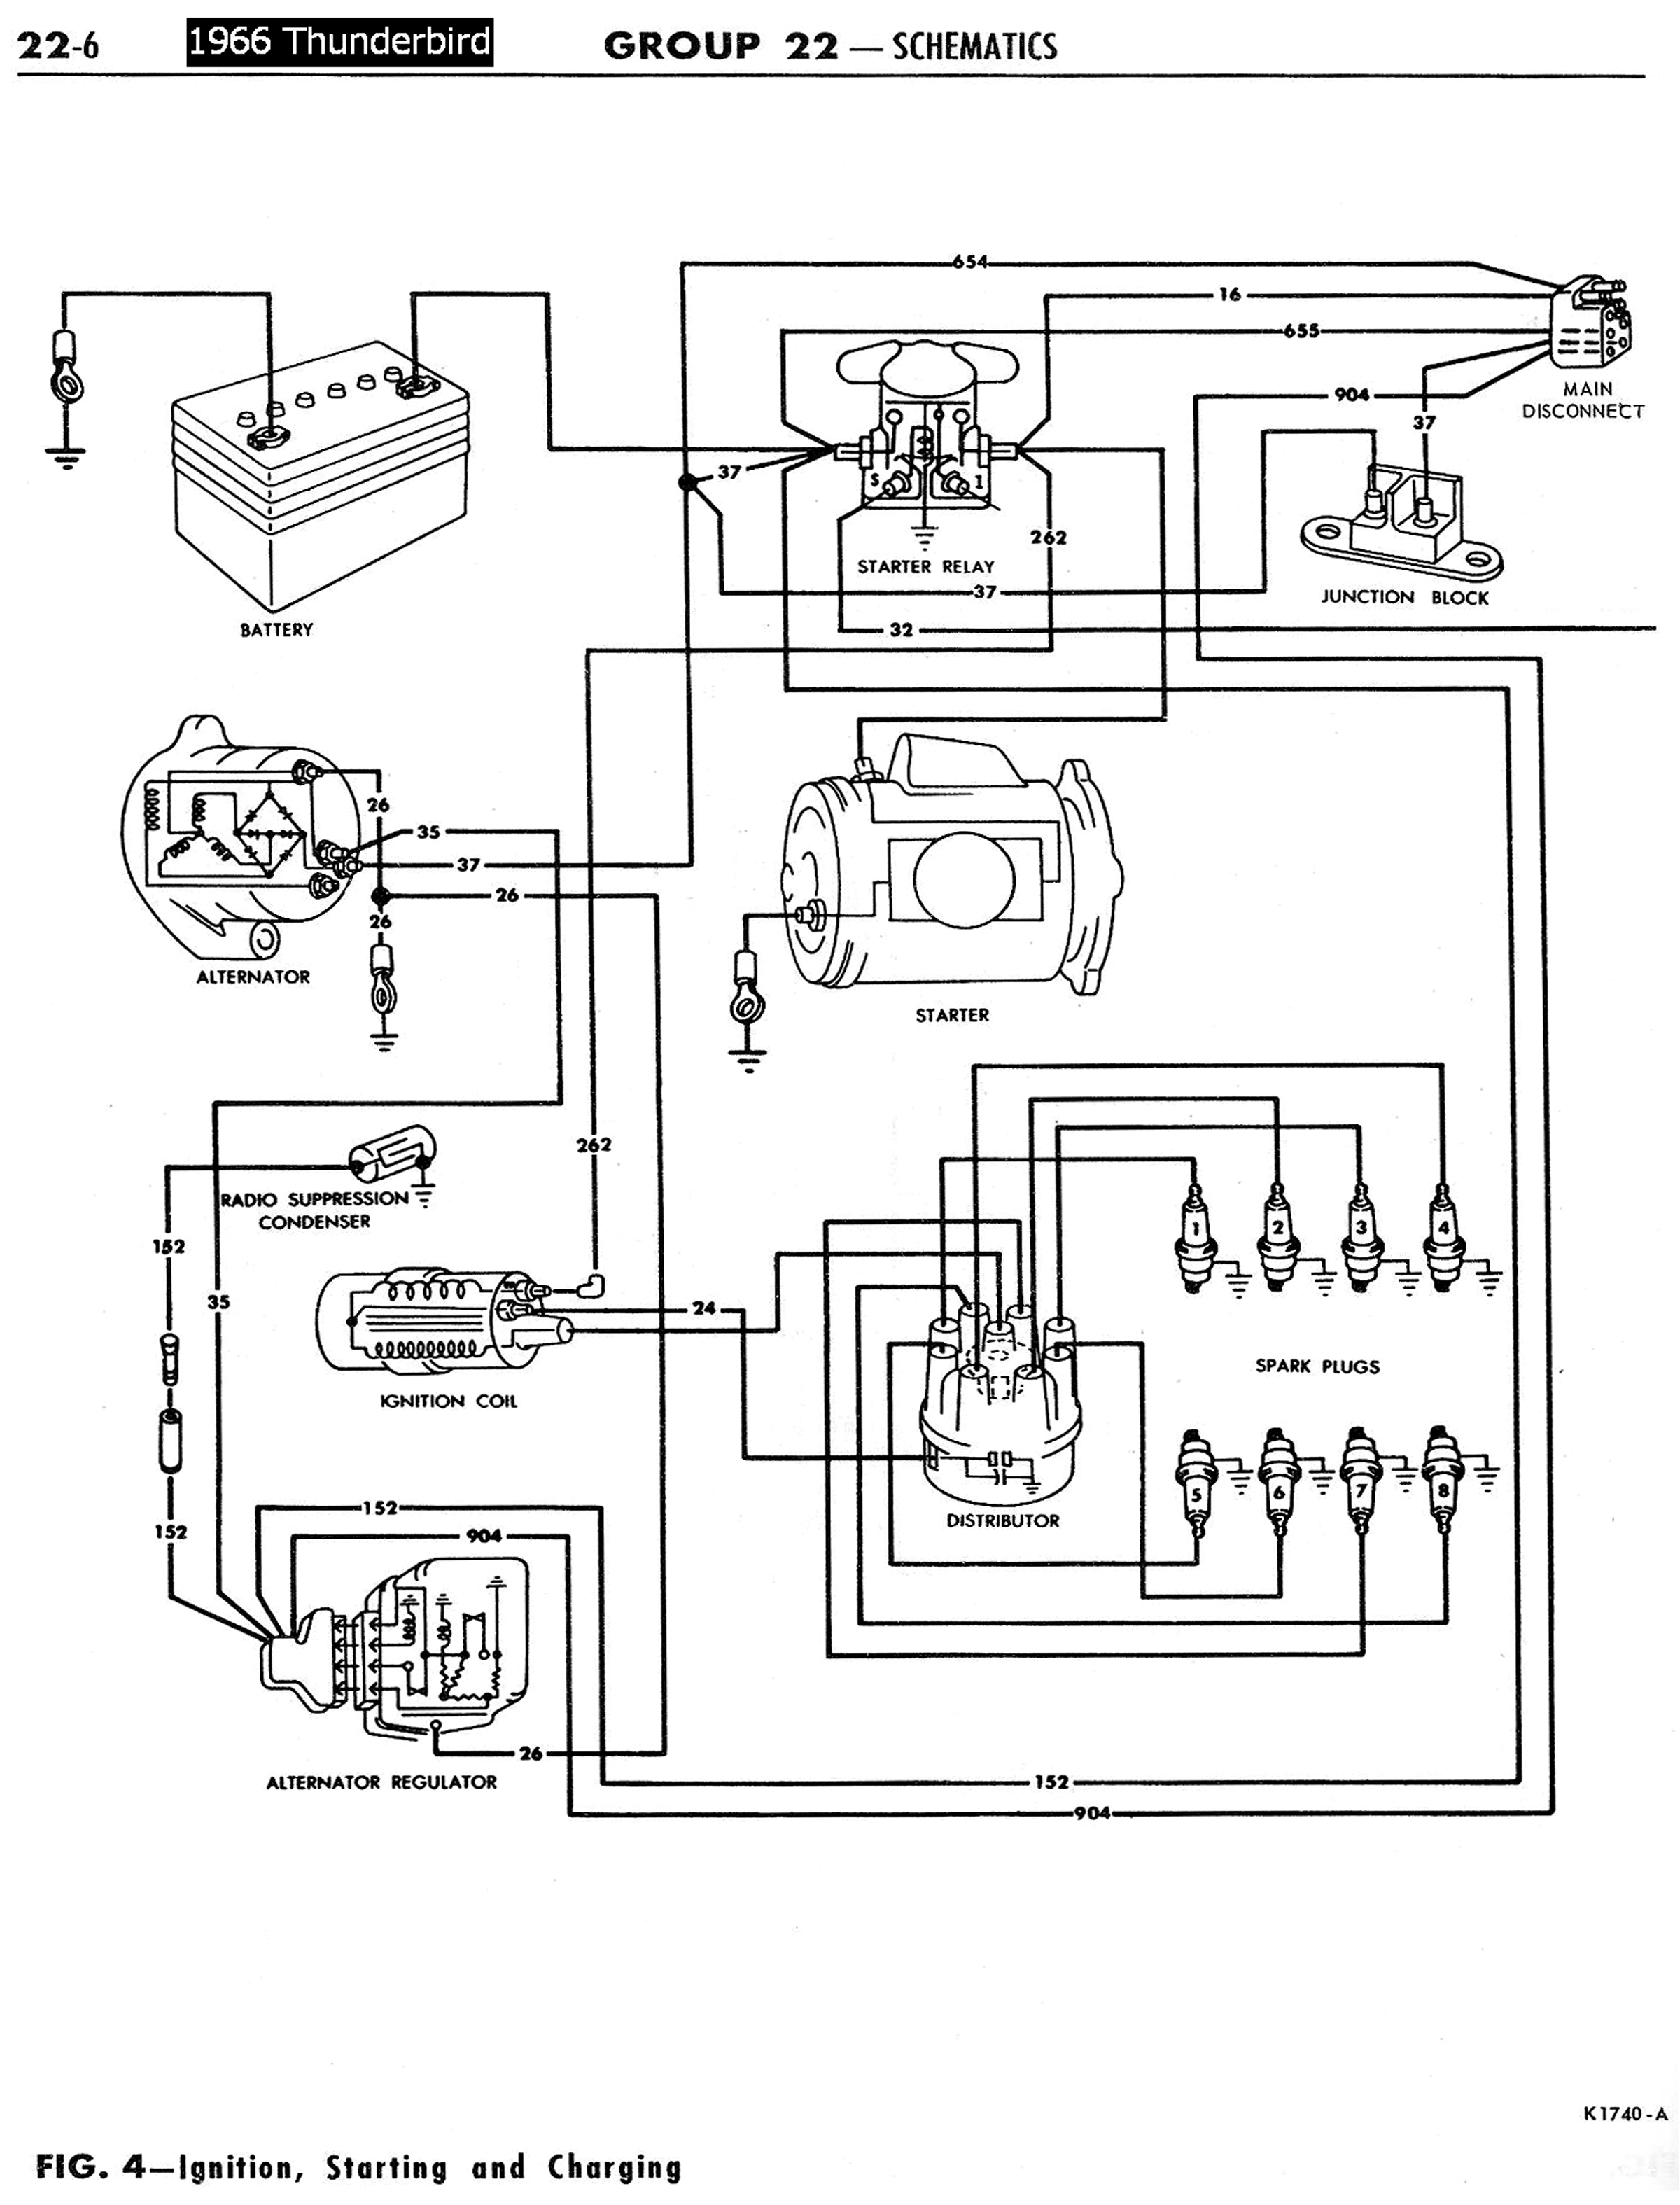 66TbirdIgnitionStartingChargingLeft 1958 68 ford electrical schematics 1955 thunderbird wiring diagram at crackthecode.co